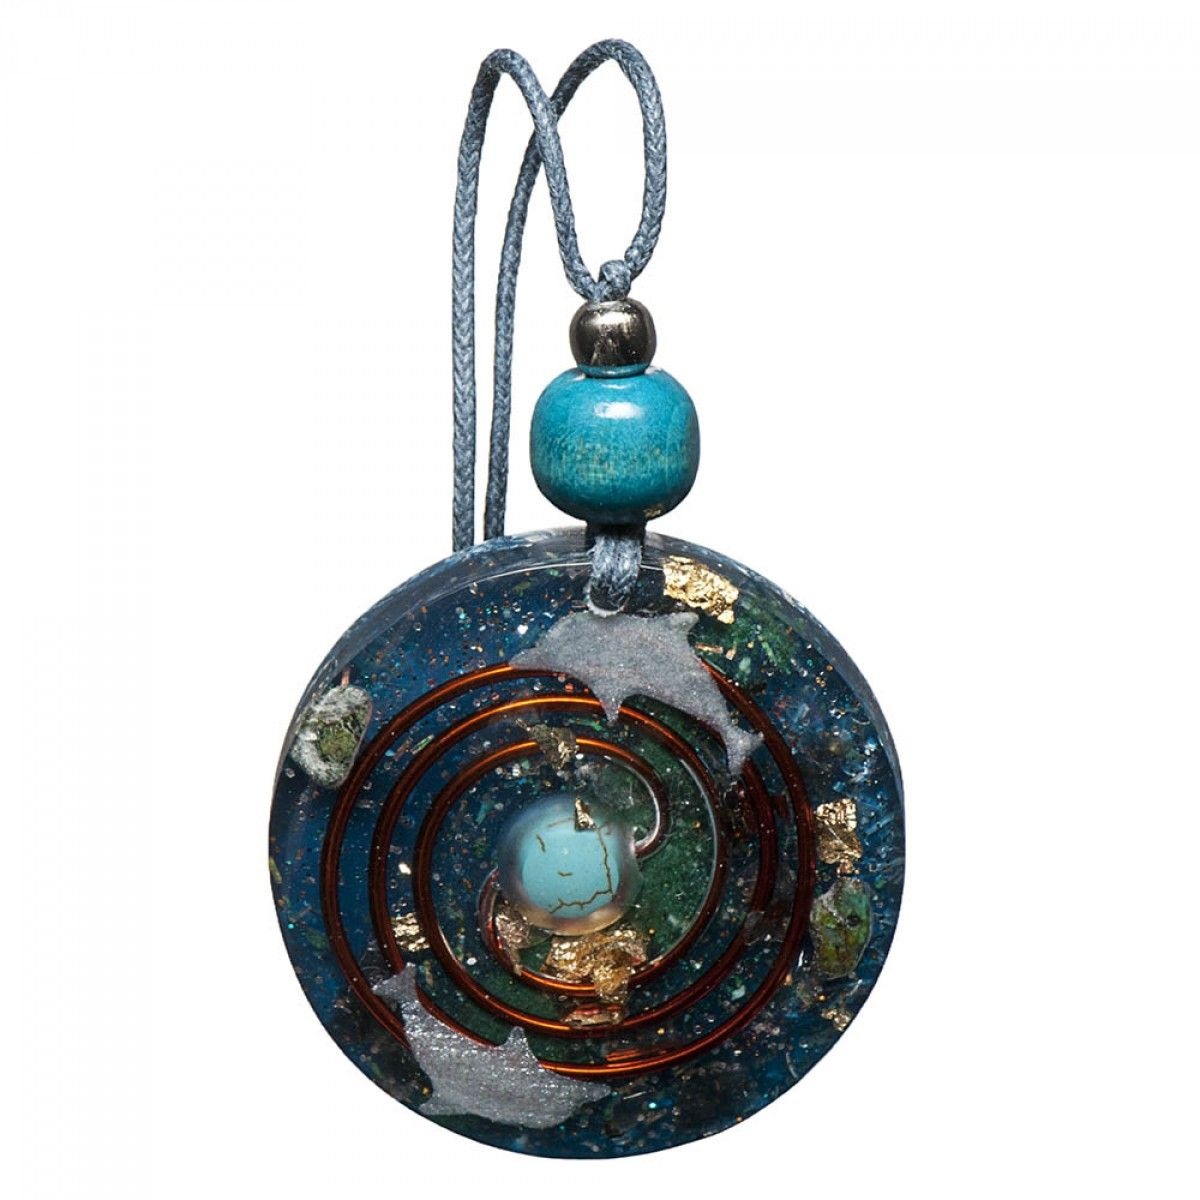 Turquoise orgonite pendant stuff to buy pinterest explore stuff to buy healing and more turquoise orgonite pendant mozeypictures Images